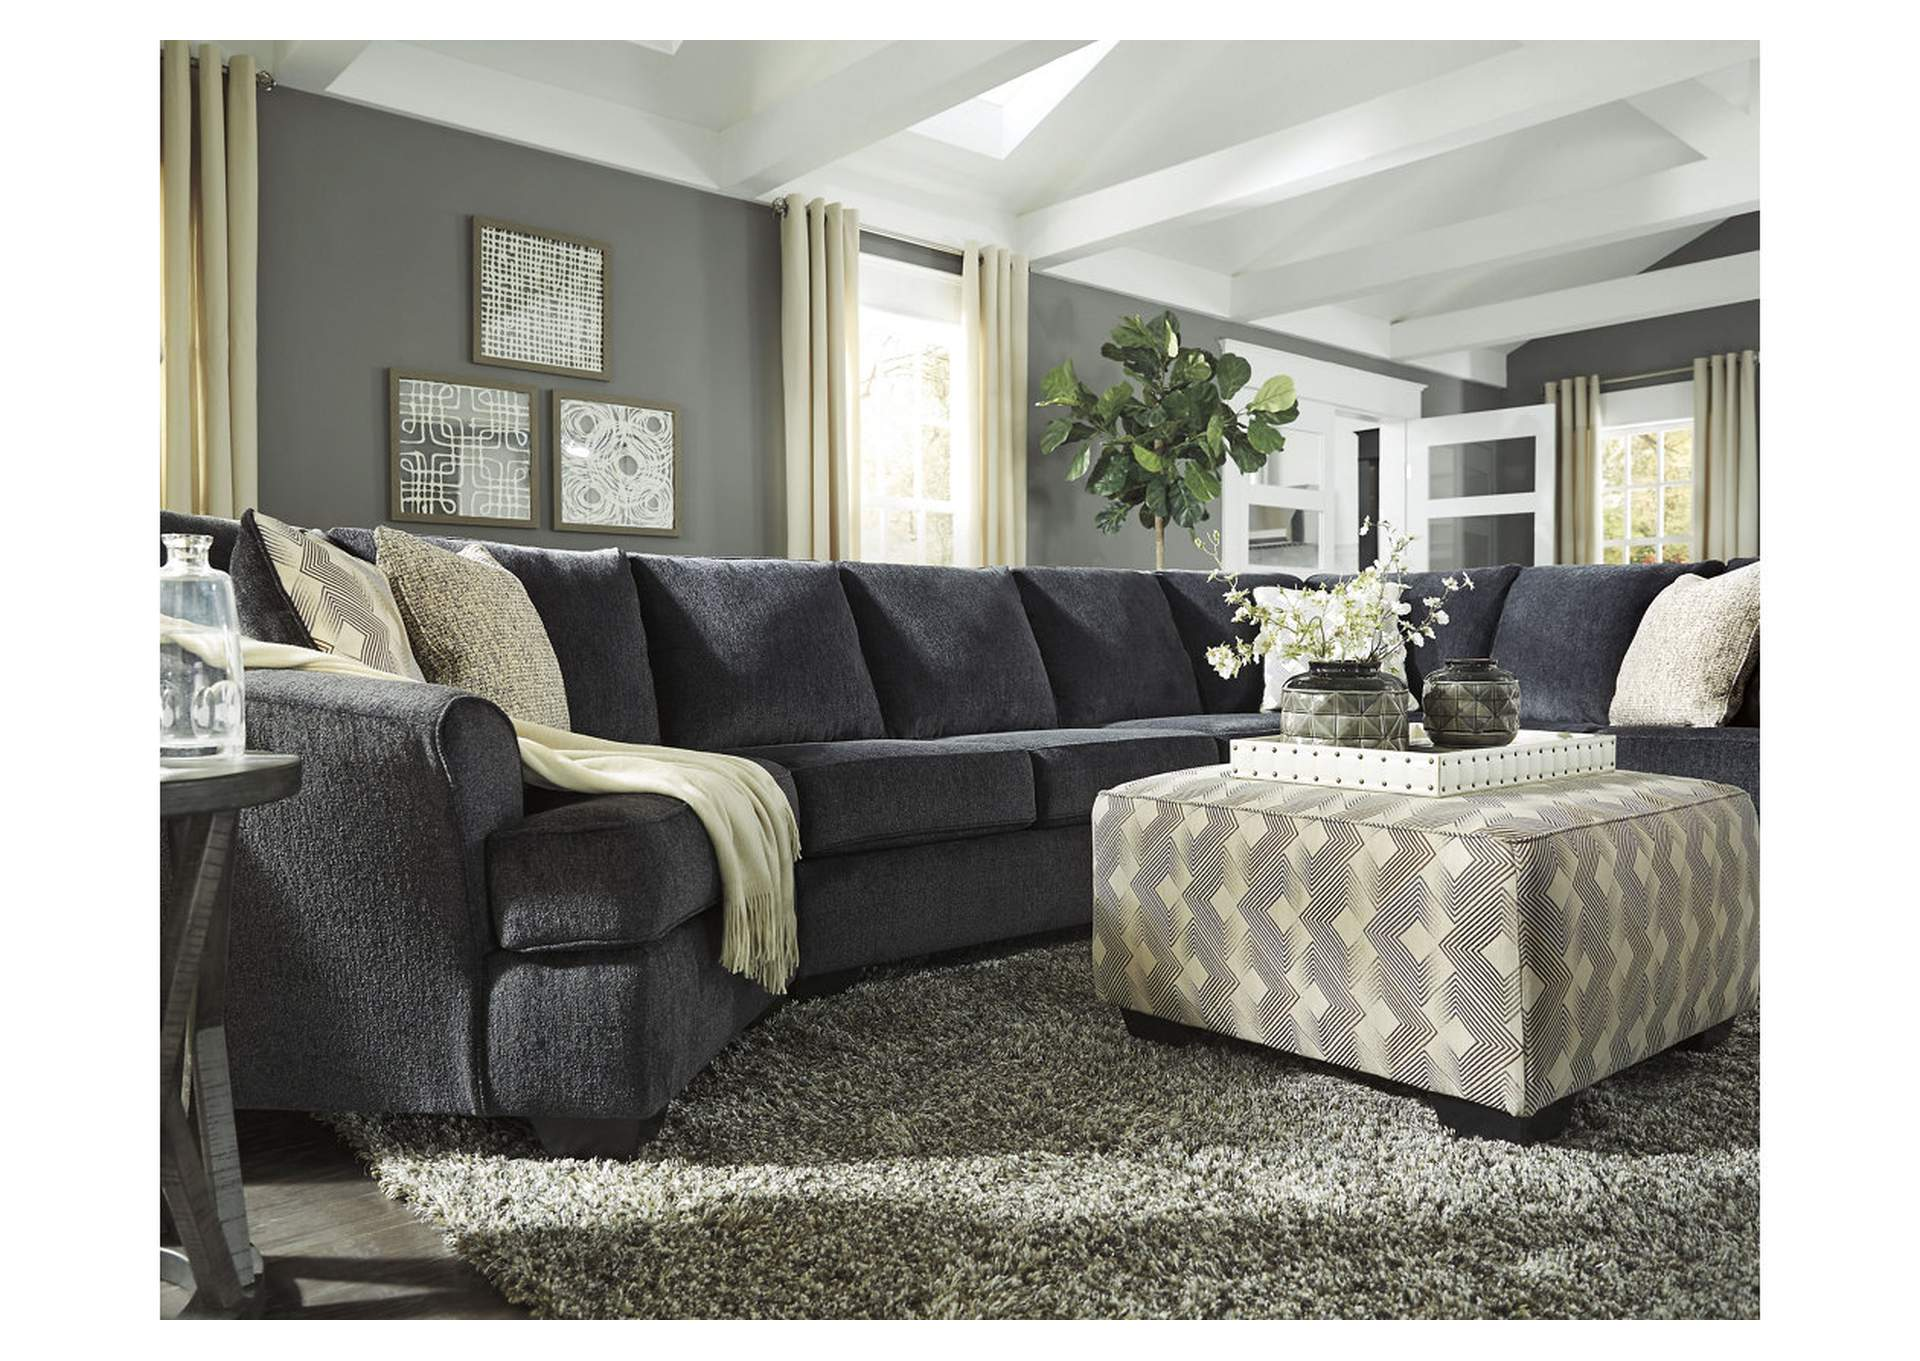 Eltmann Slate Oversized Ottoman,Signature Design By Ashley